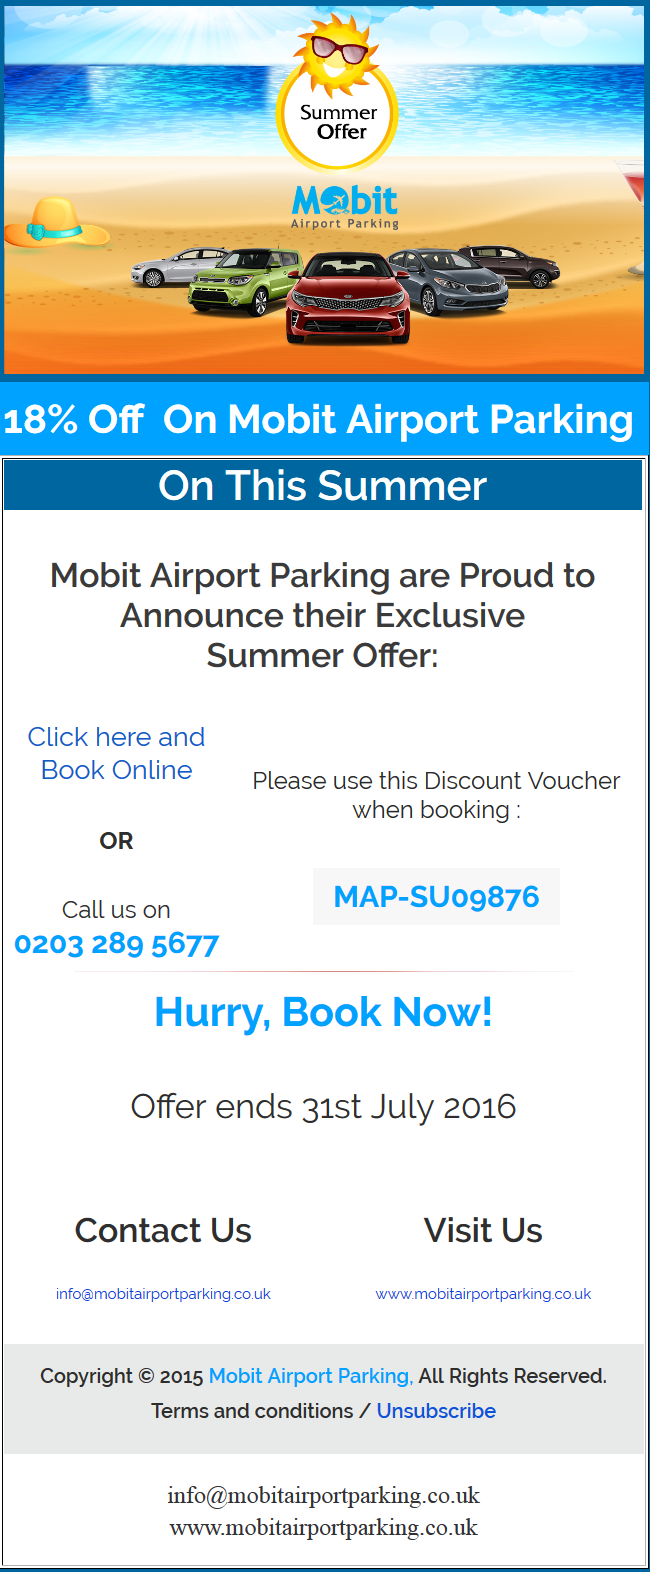 Mobit airport parking brings another amazing offer for the save of your airport car parking budget and travel economically discount is available on all meet and greet parking deals at uk airports till aug kristyandbryce Gallery